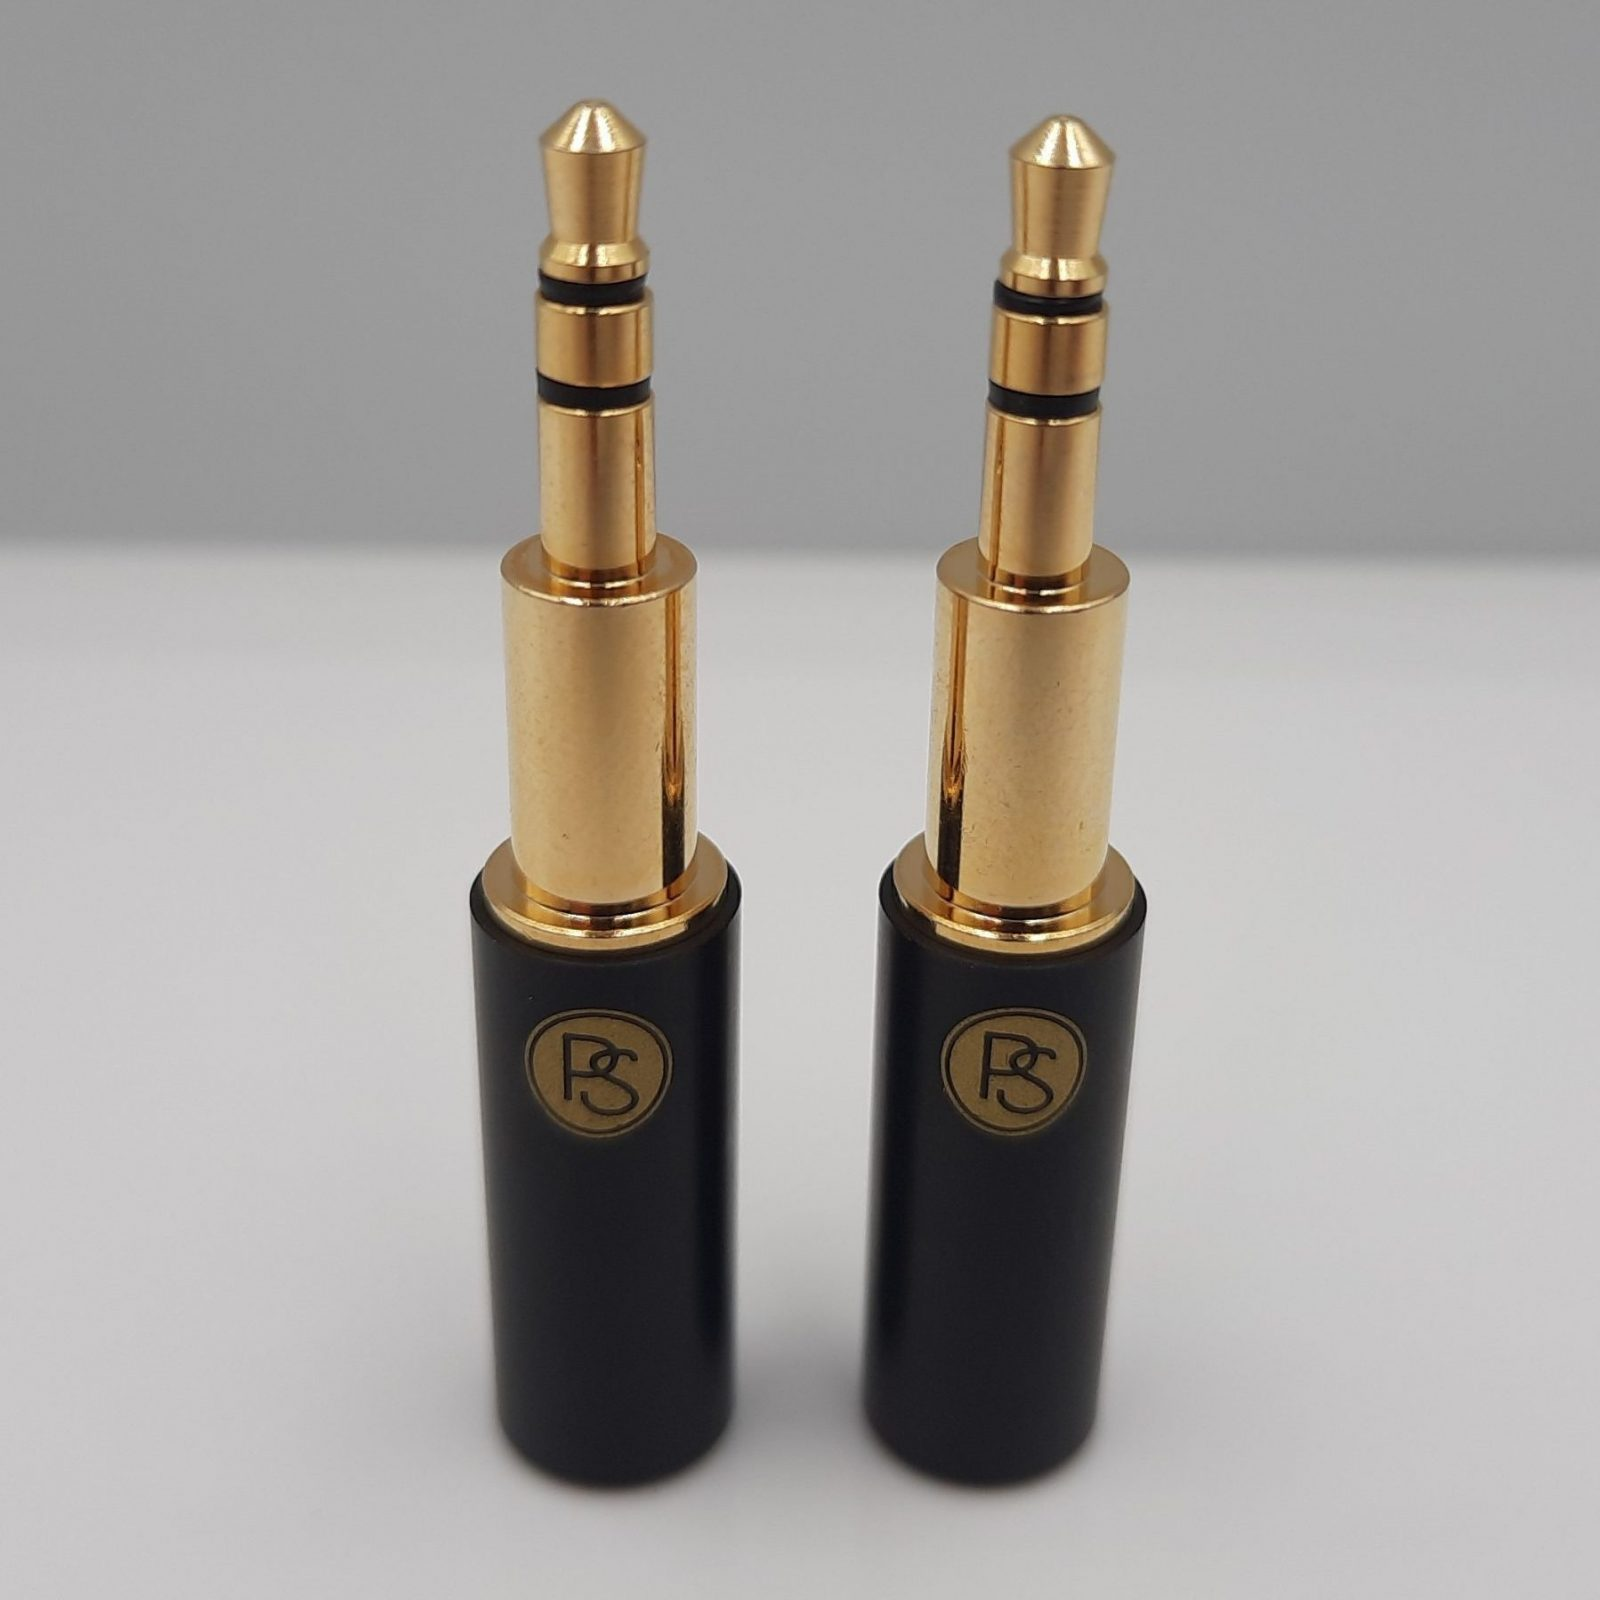 PLUSSOUND Gold Plated 3.5mm Extended